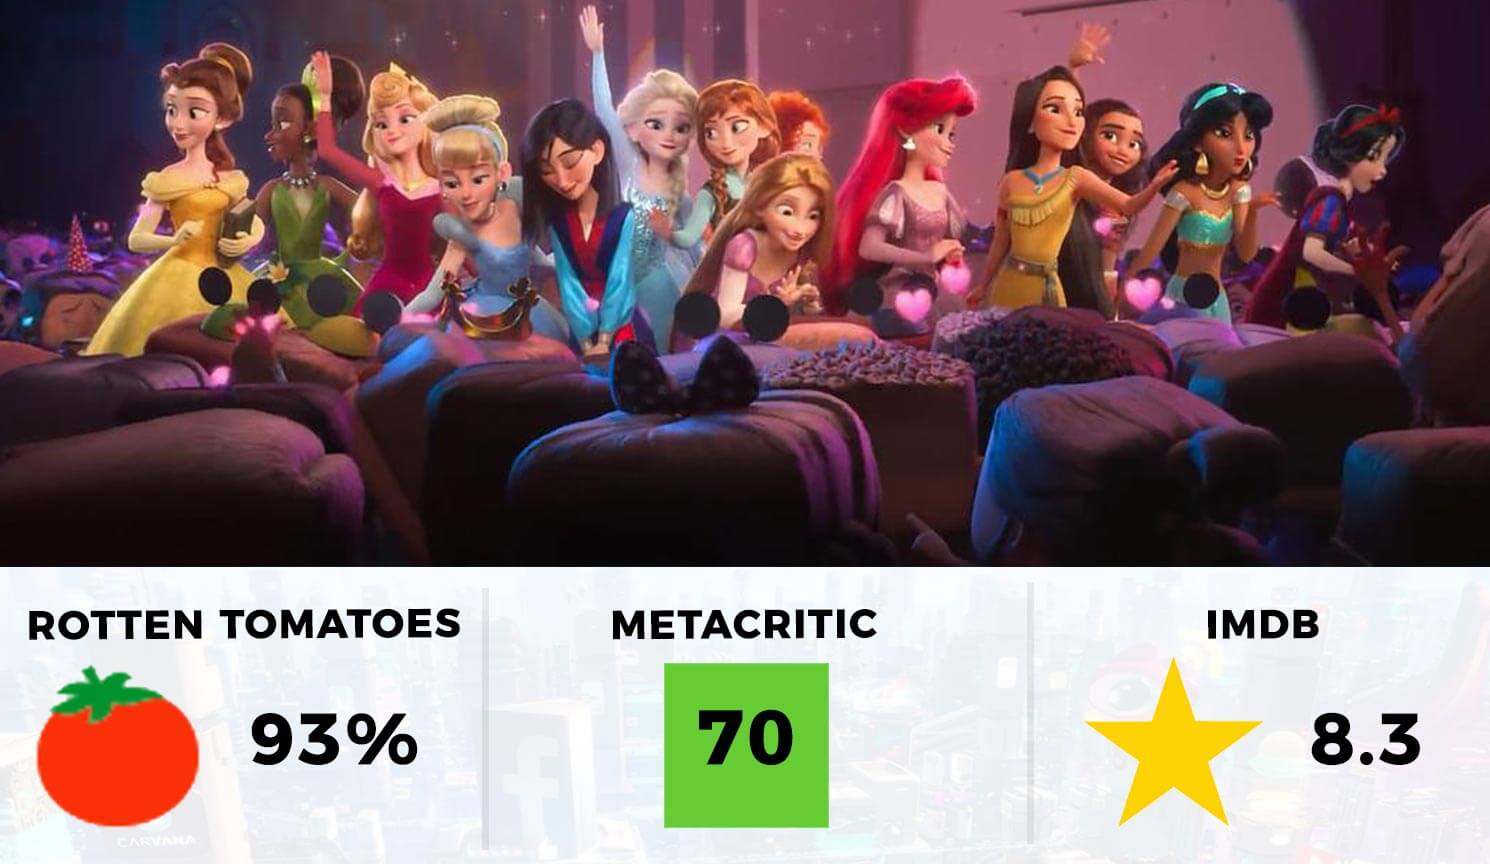 Ralph Wrecks The Internet: Wreck-It Ralph 2 Ratings